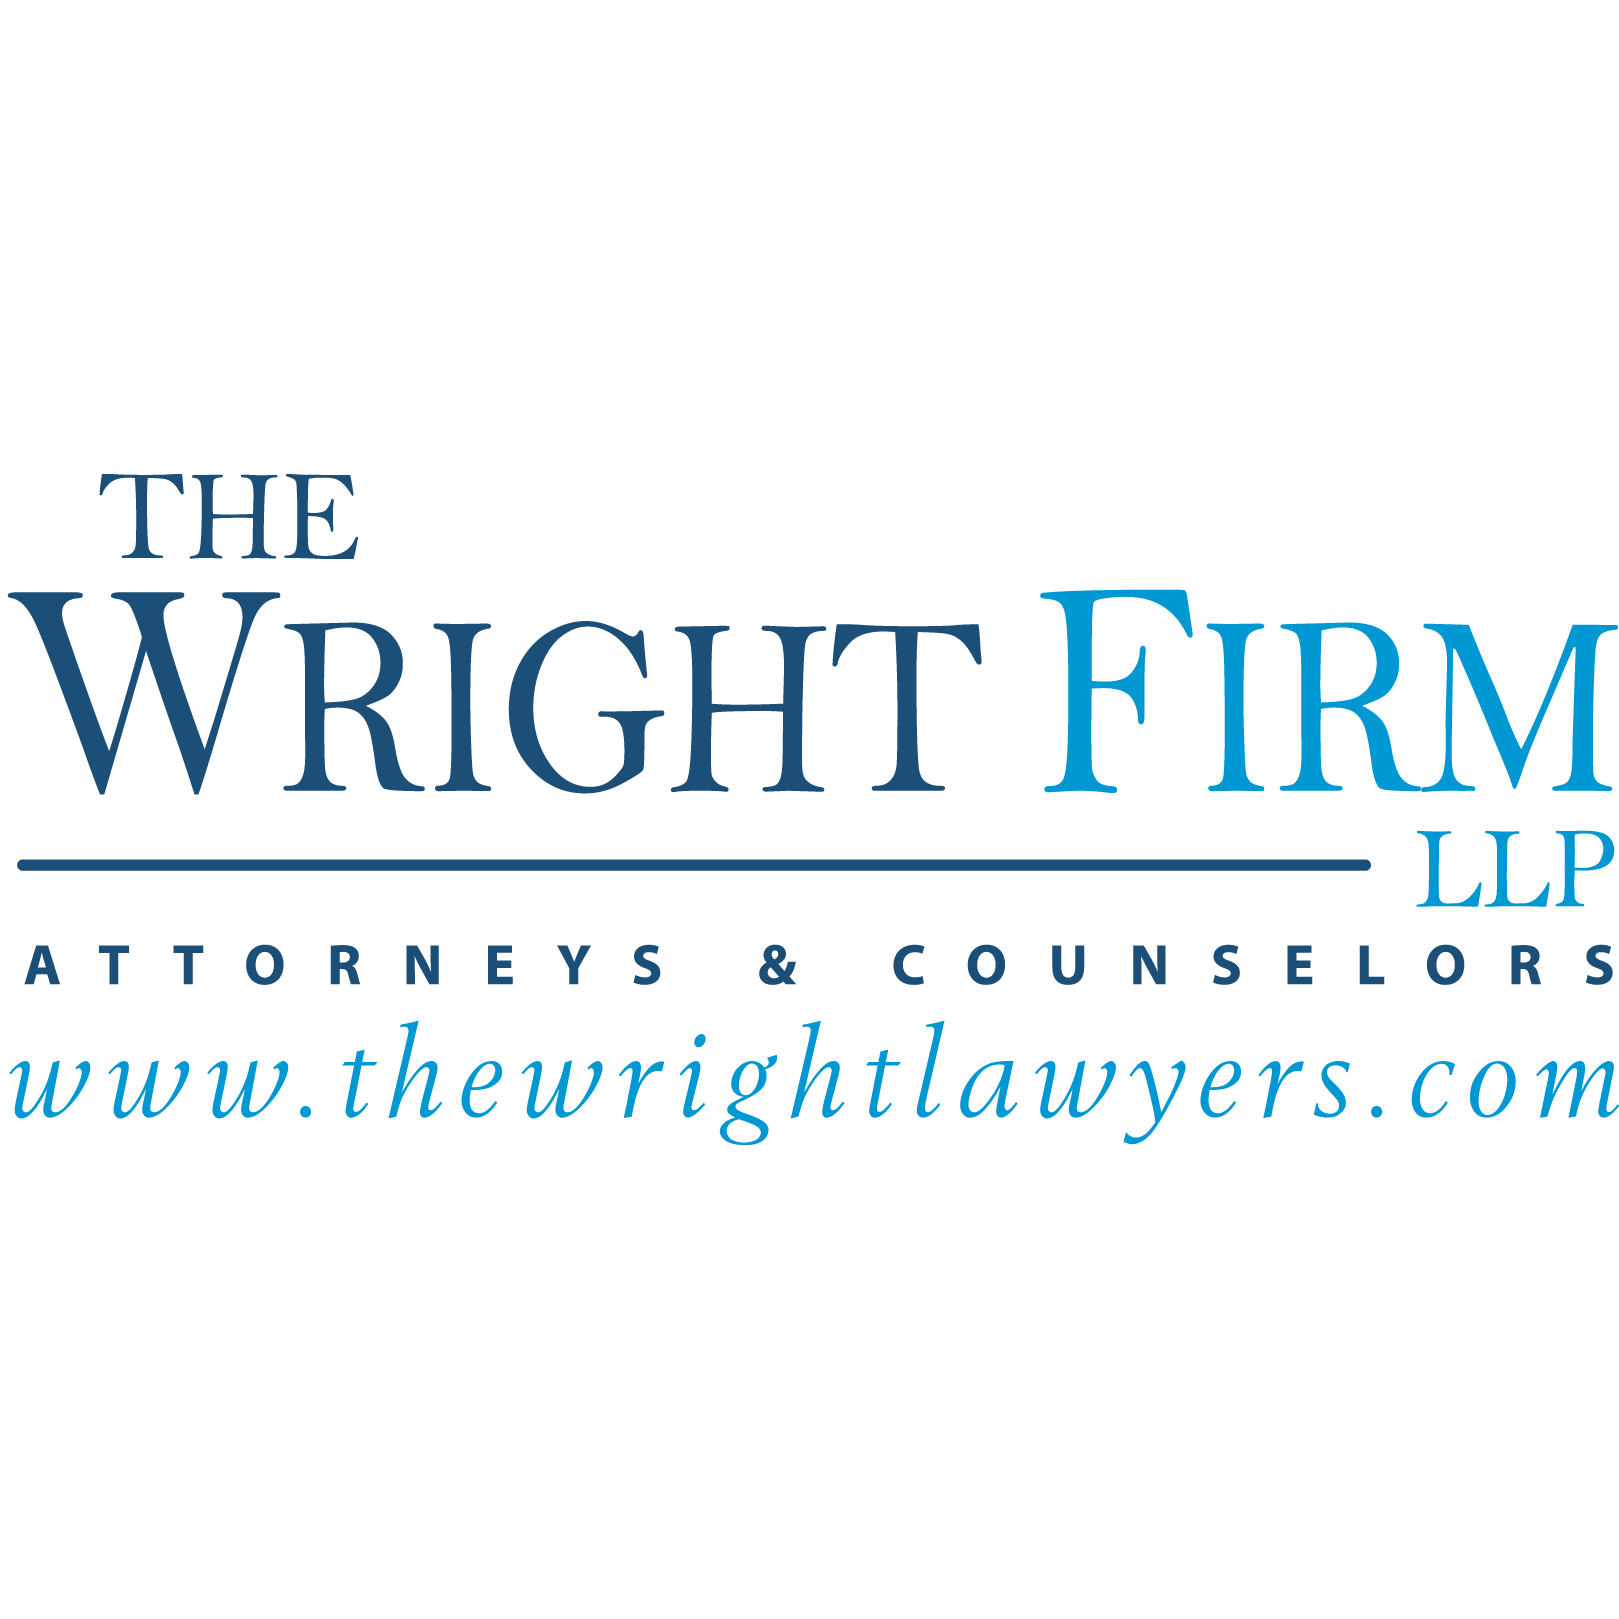 The Wright Firm, L.L.P. image 2